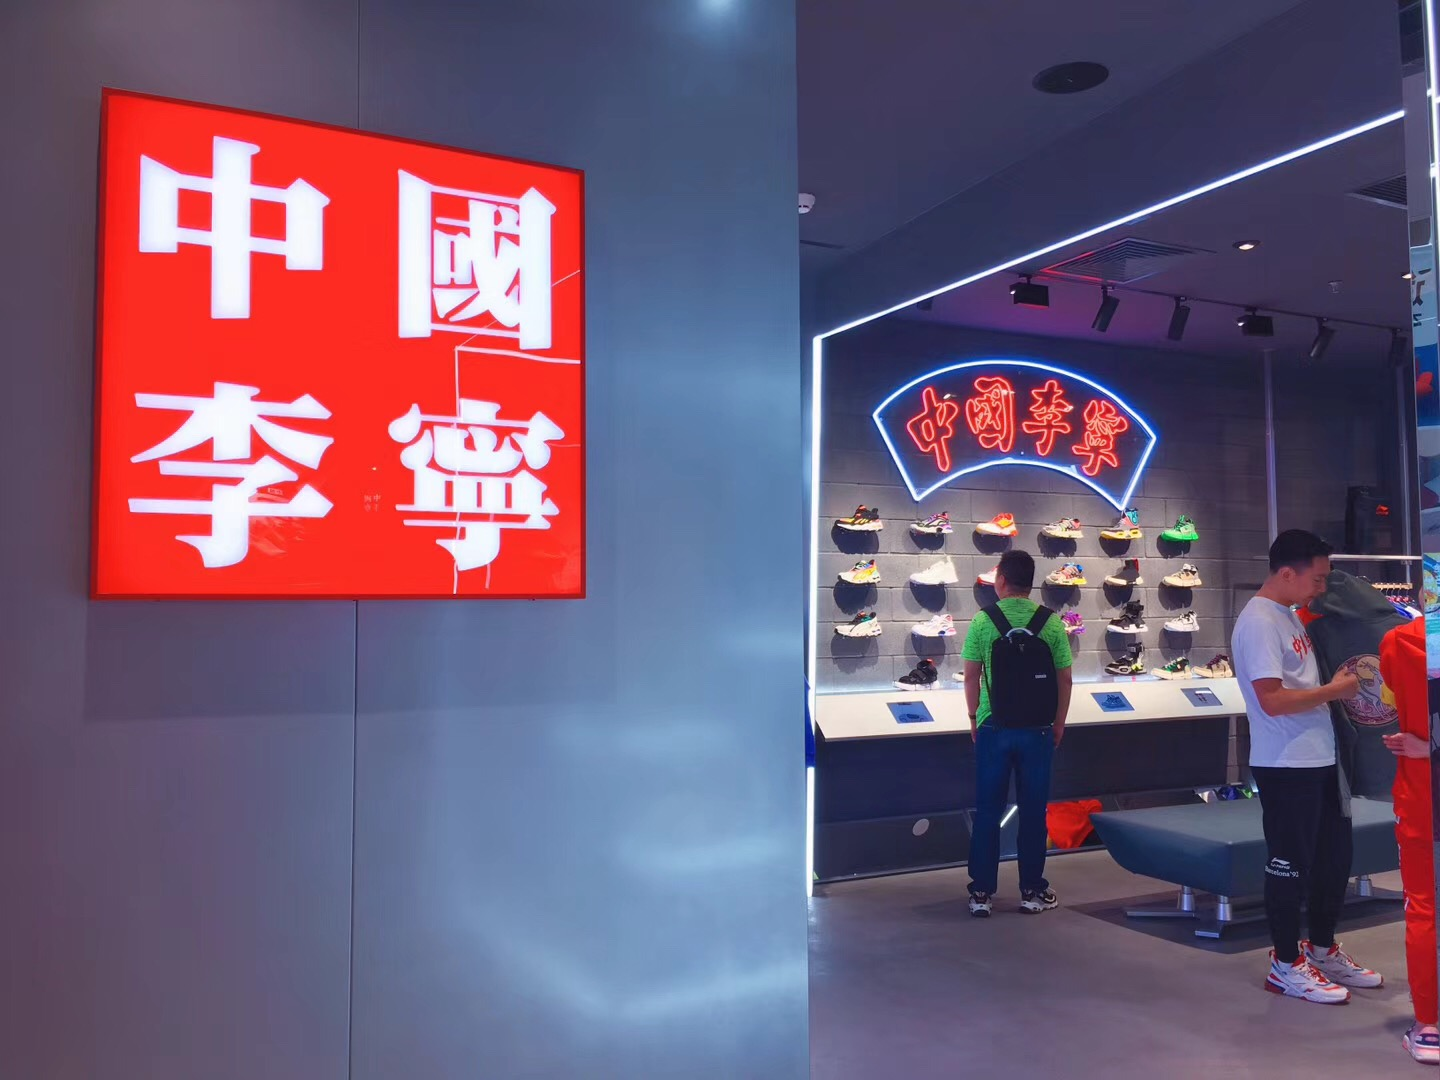 After New York Fashion Week in 2018, Li Ning opened many Fashion Concept Retail Store in China